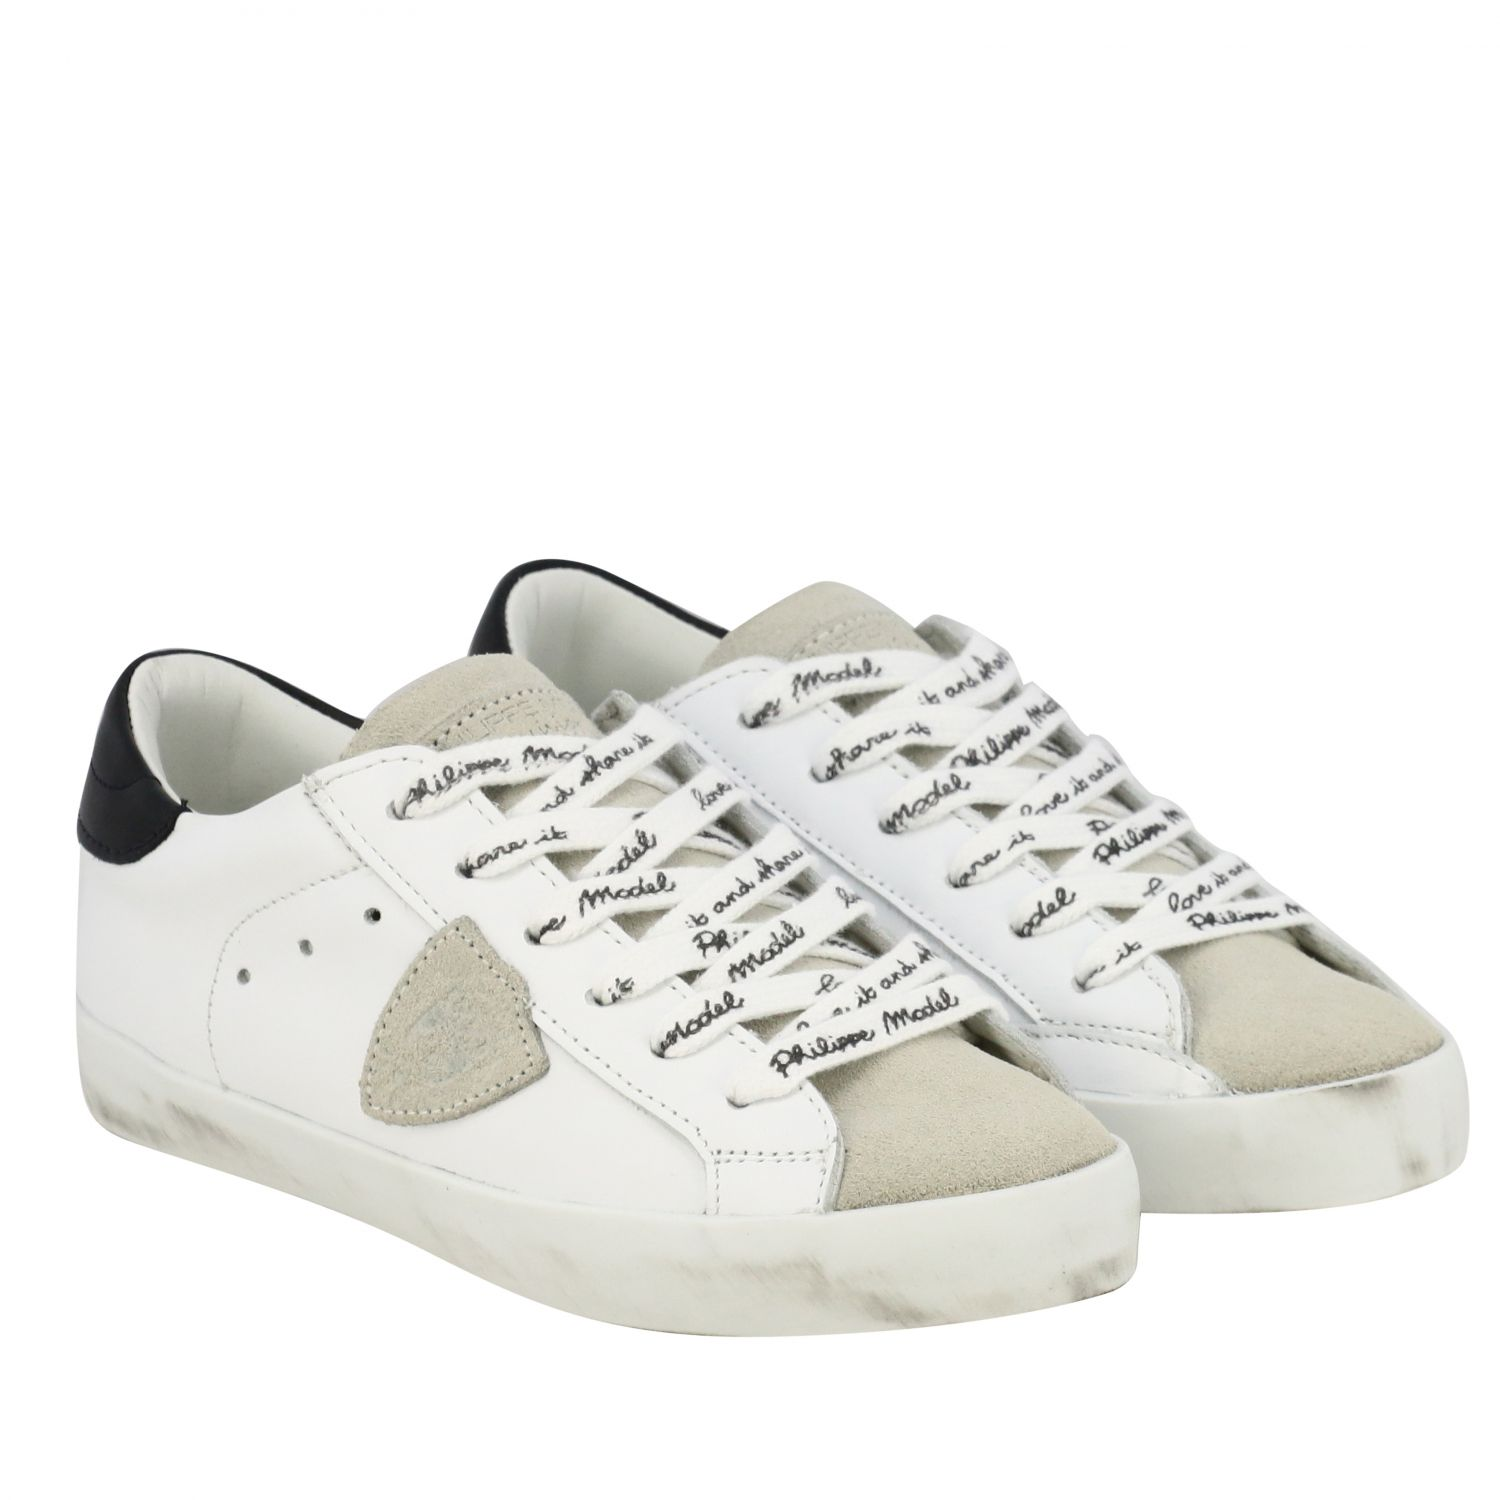 Shoes kids Philippe Model white 2